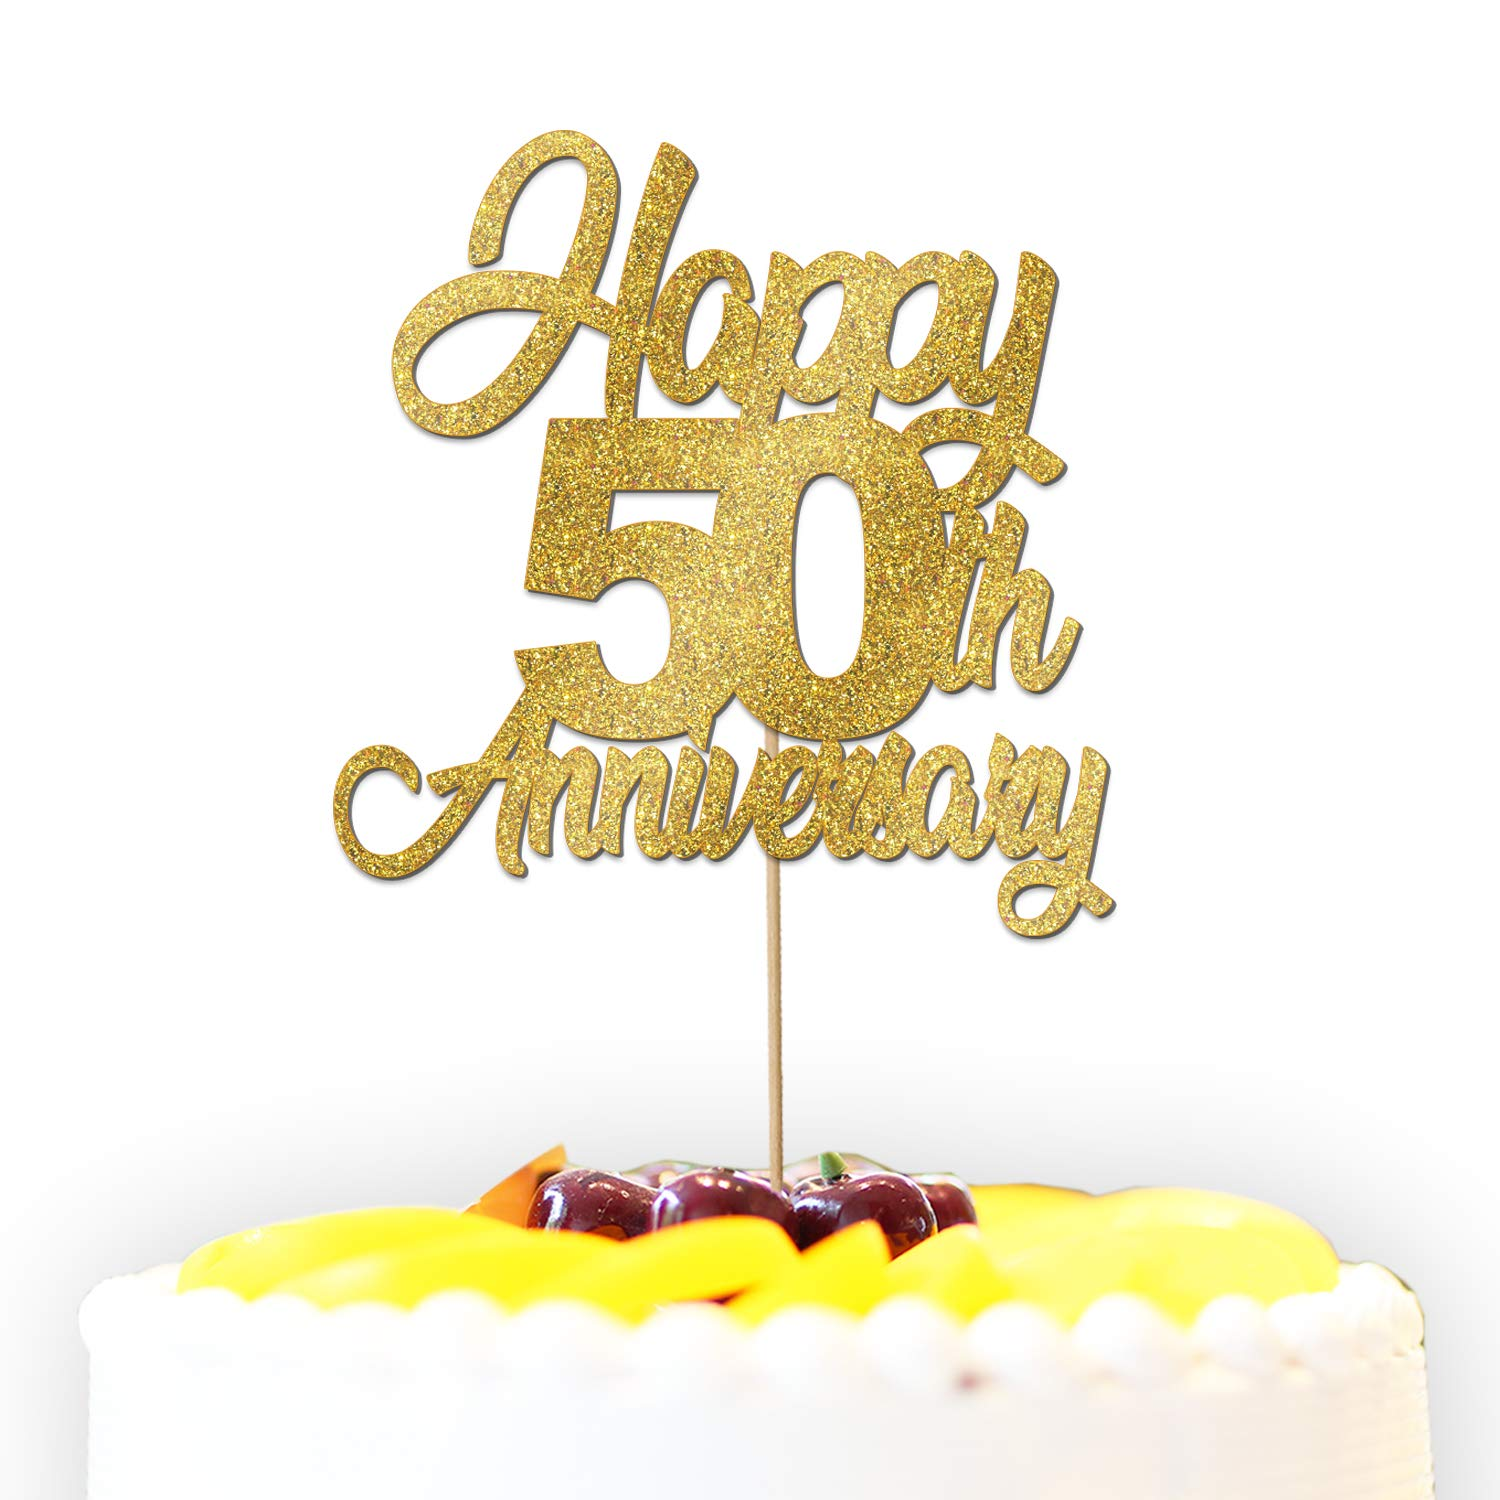 Personalised Happy 40th 50th 60th Golden Wedding Anniversary Glitter Cake Topper Decoration